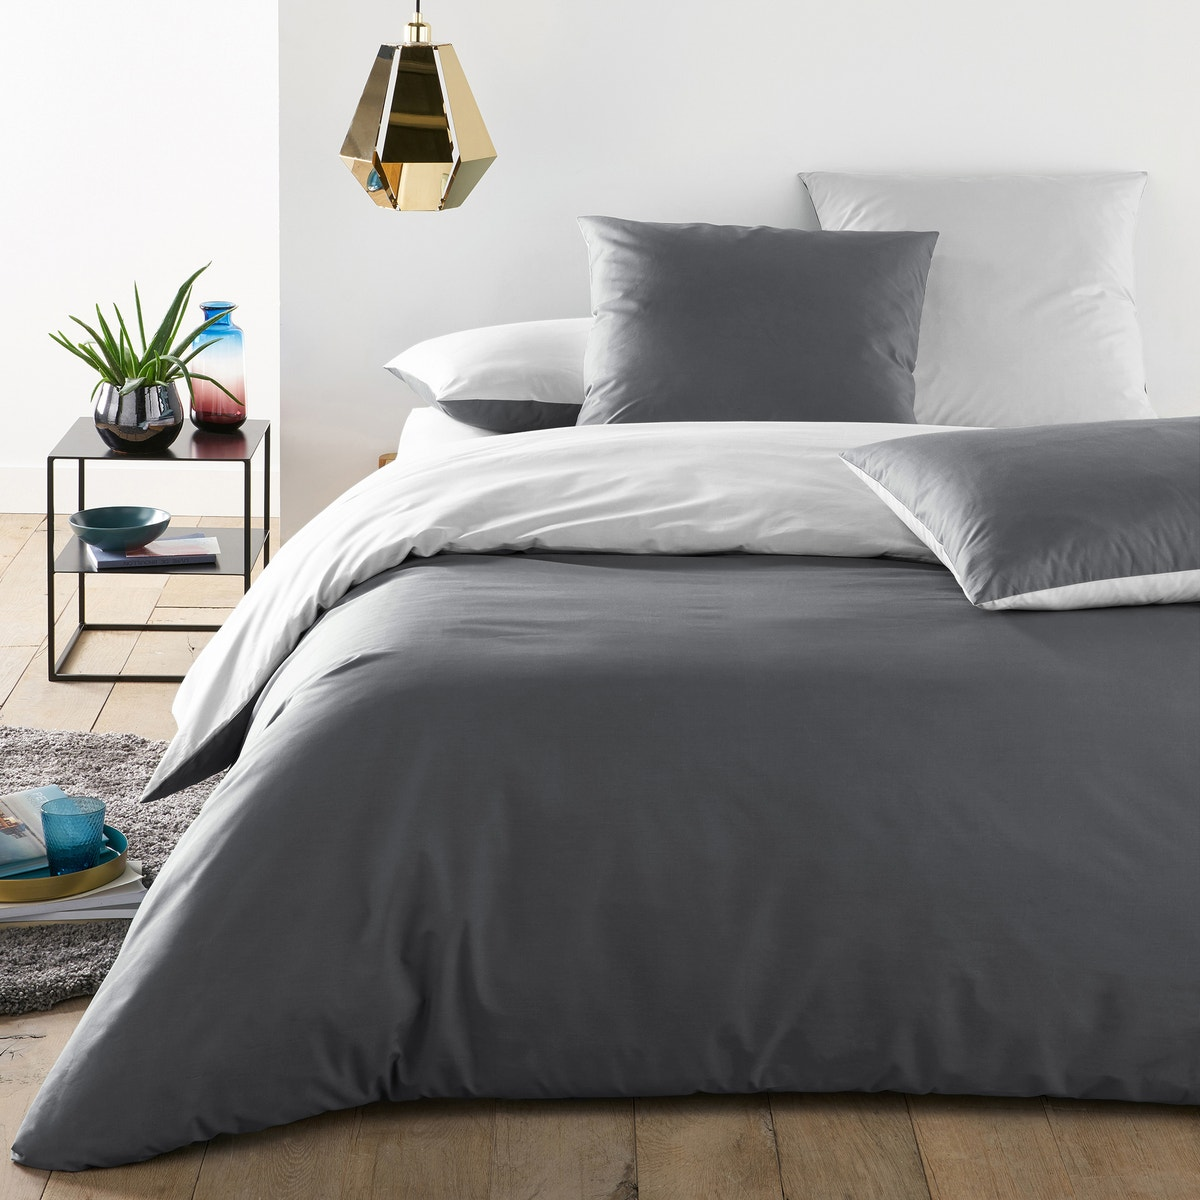 Boys And Girls Two-Tone Cotton Percale Duvet Cover